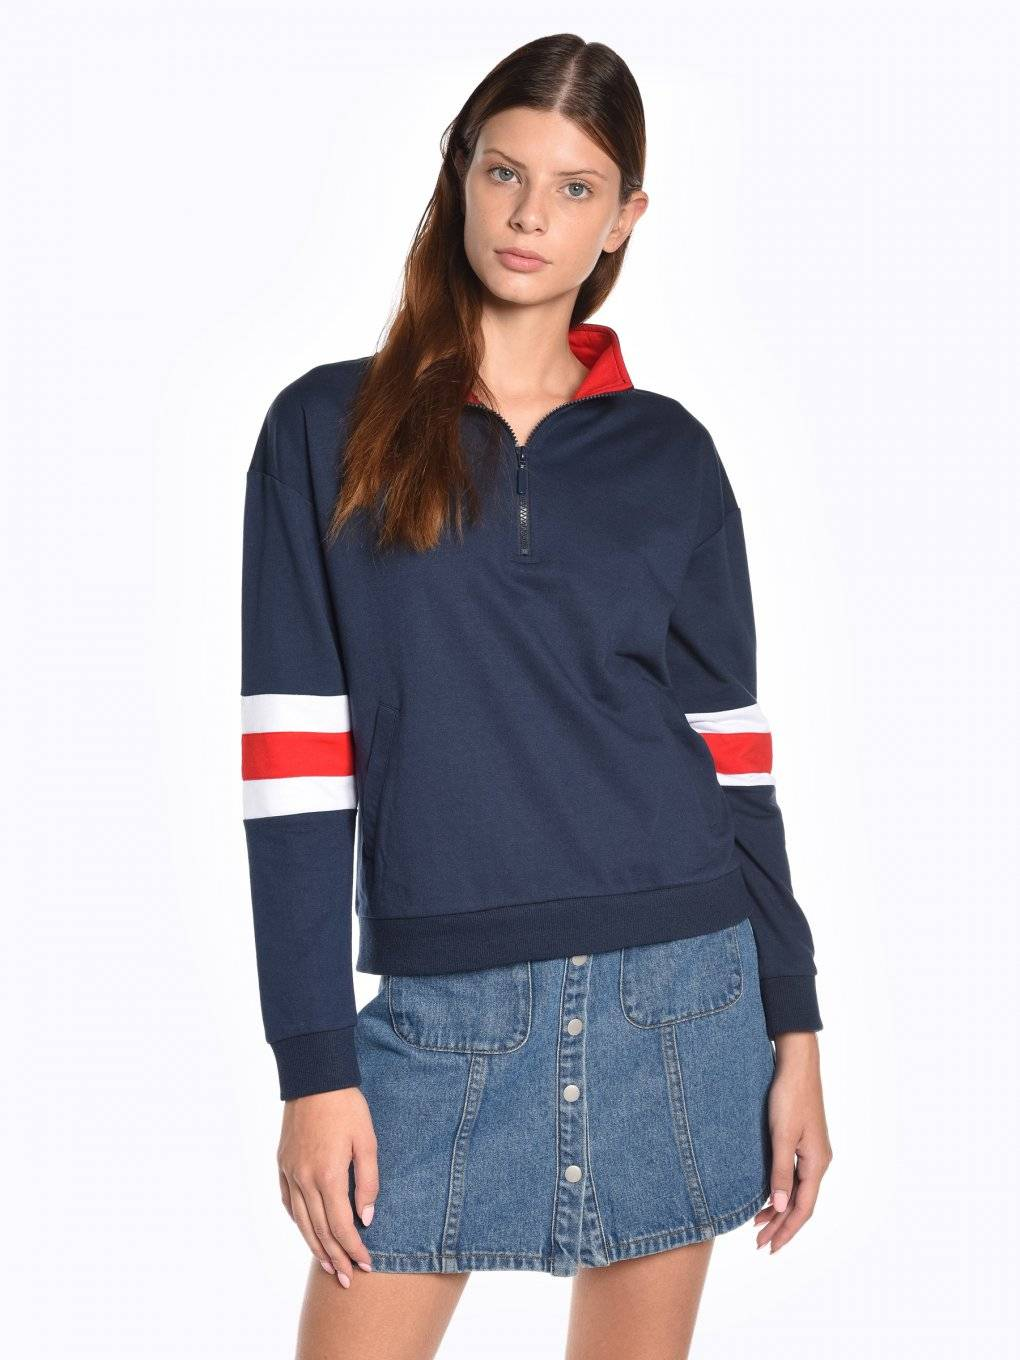 Sweatshirt with zipper and sleeve stripes